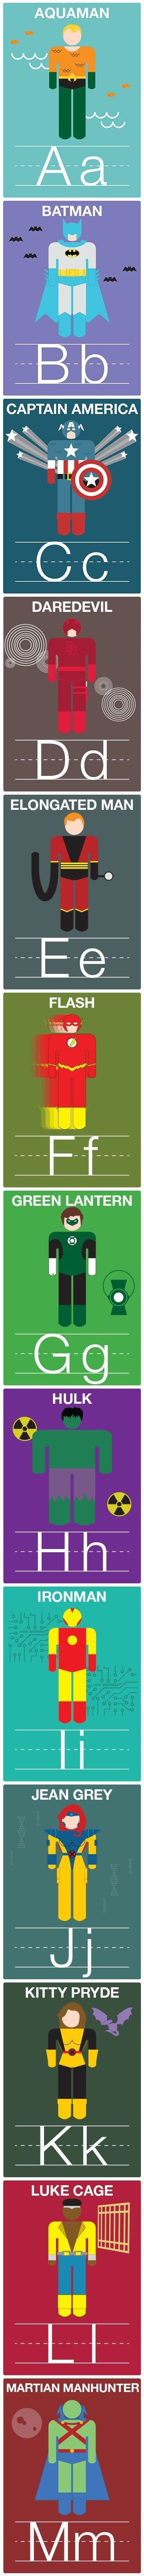 A-M Superhero Alphabet Cards (P. Mizzey)                                                                                                                                                      More